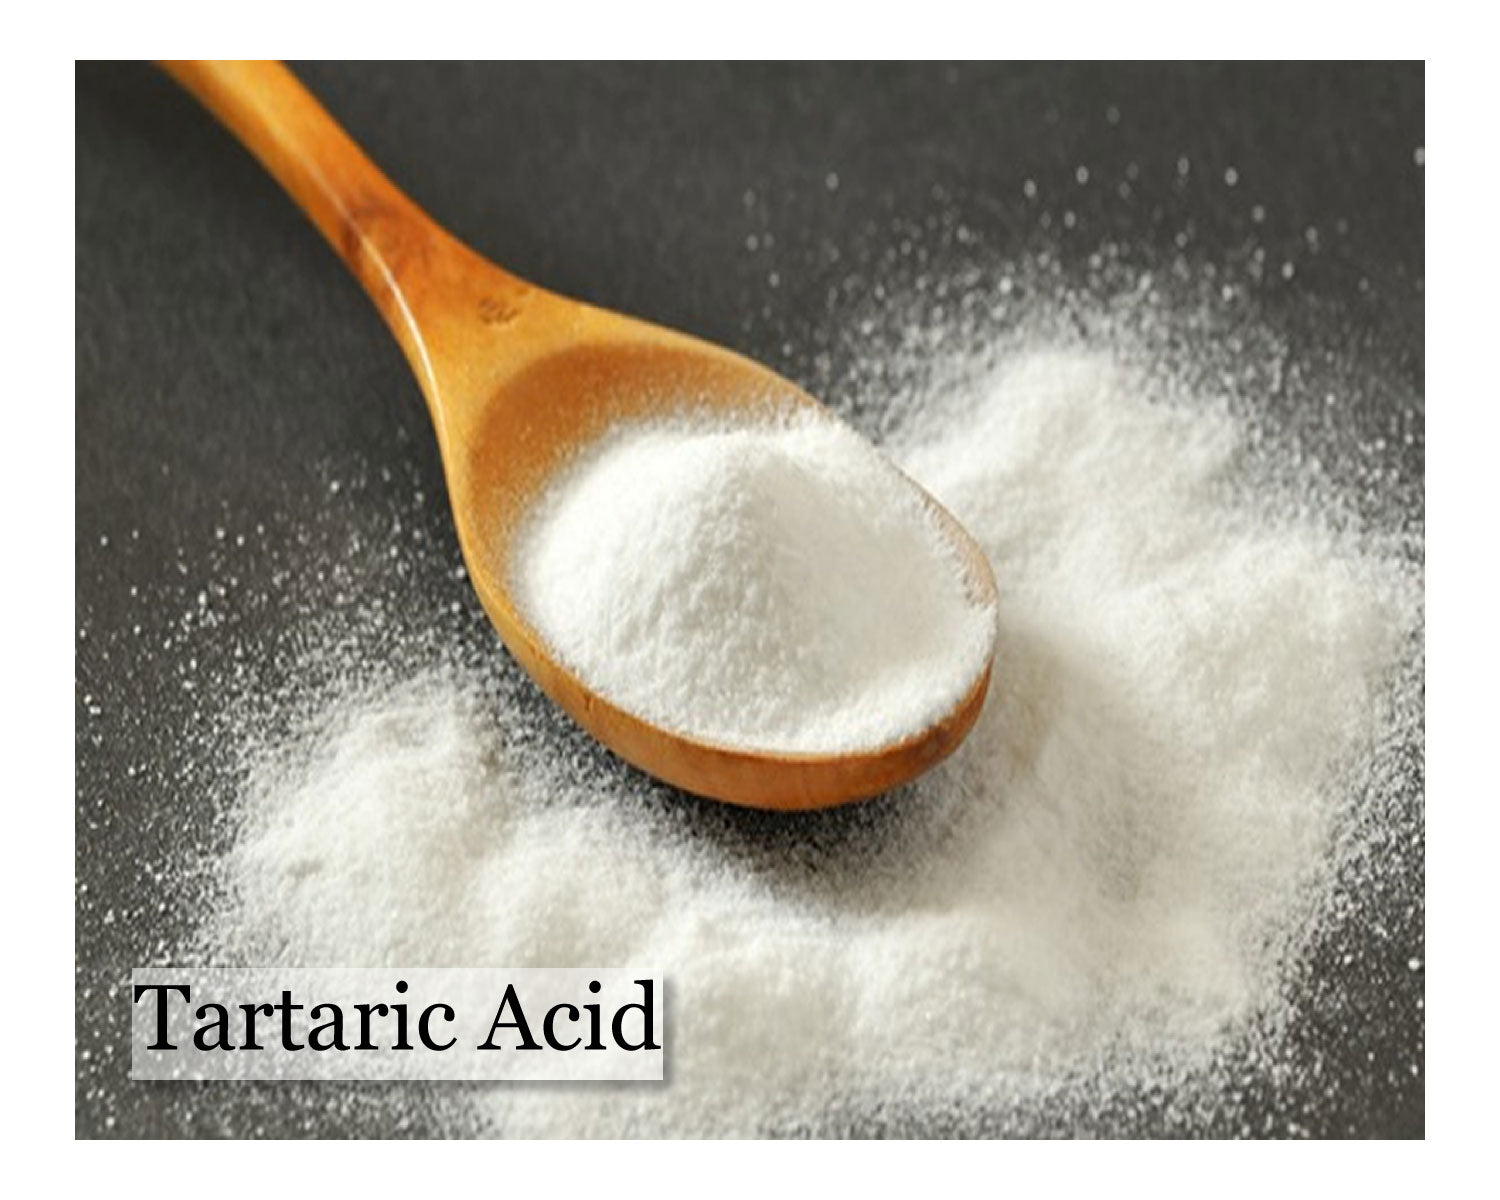 Tartaric Acid - 16oz (454g) - Wholesale